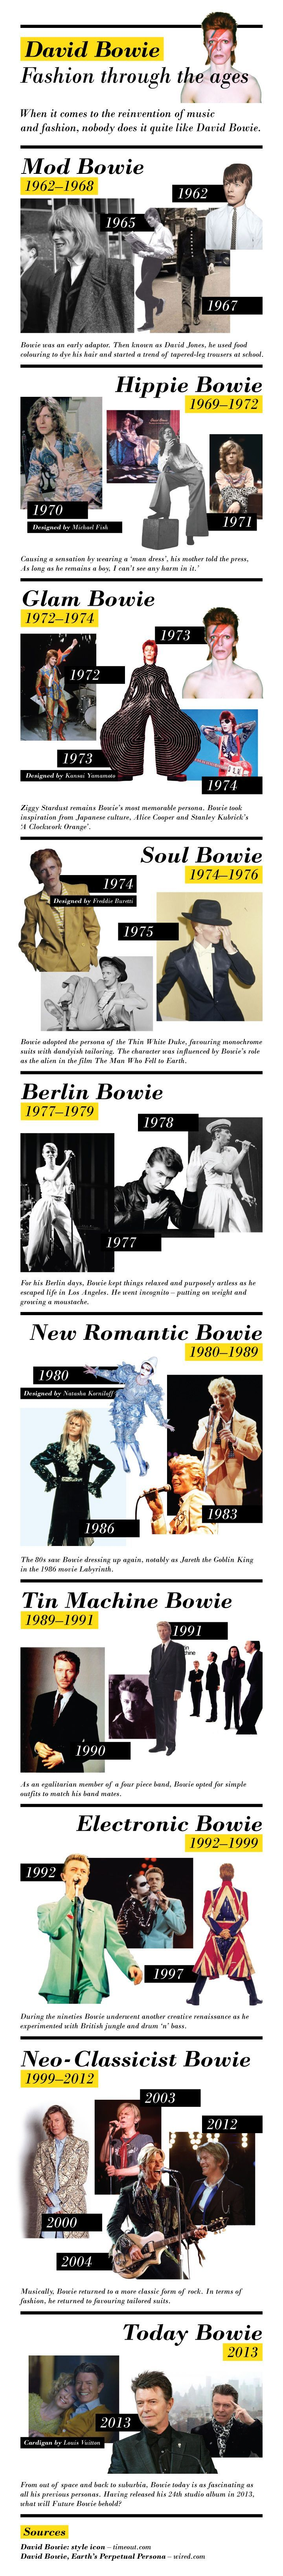 Fashion Icon   David Bowie Style Through the Decades: From Mod & Glam to Neo Classicist. Ally.....: